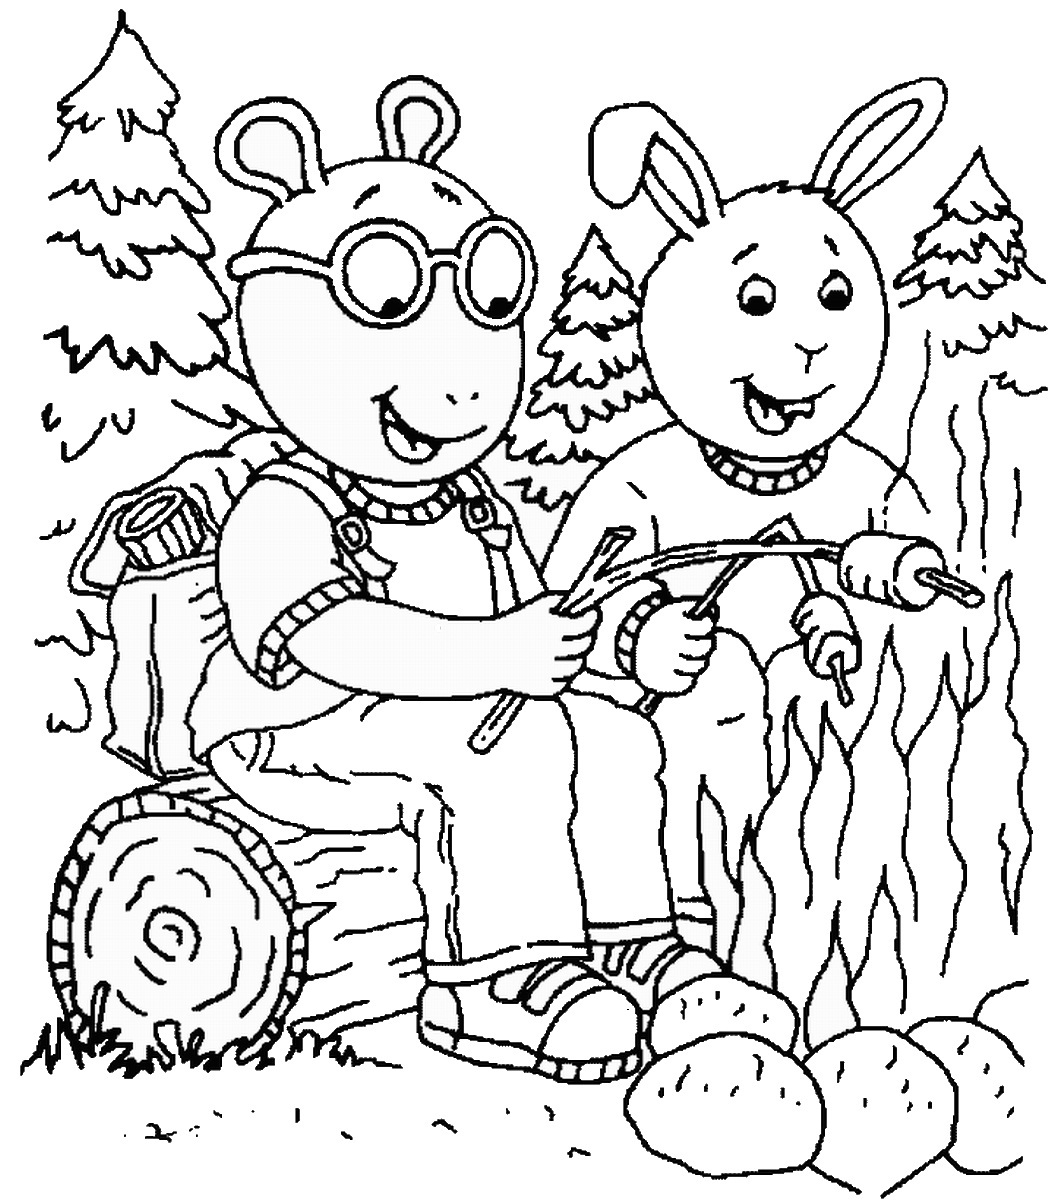 arthur coloring pages arthur coloring pages printable kids activity sheet free coloring pages arthur